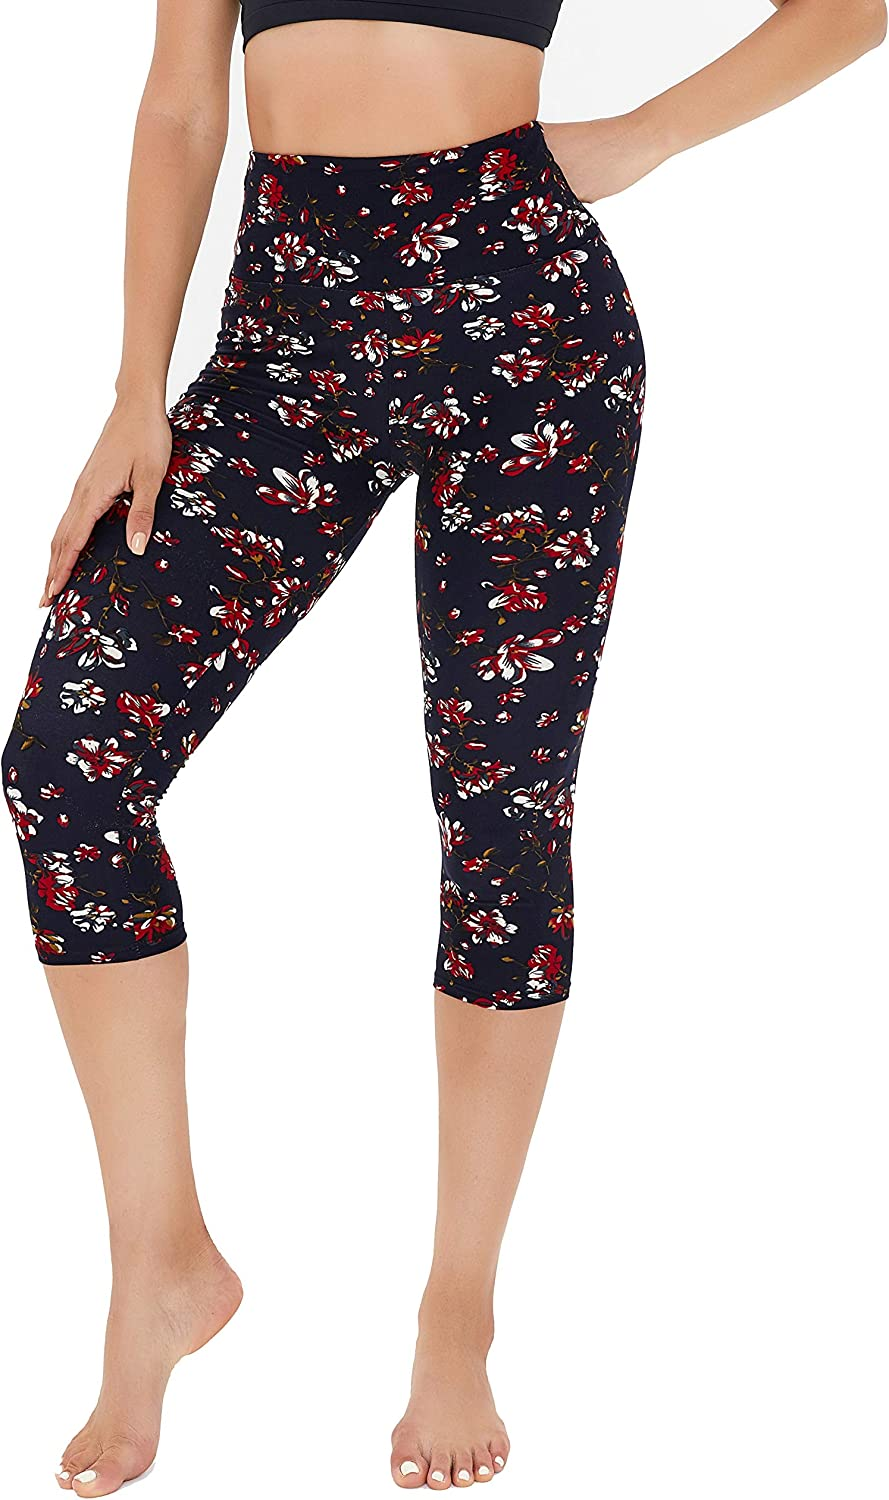 Soft Slim Tummy Control Exercise Pants for Running Cycling Yoga Workout Gayhay High Waisted Capri Leggings for Women